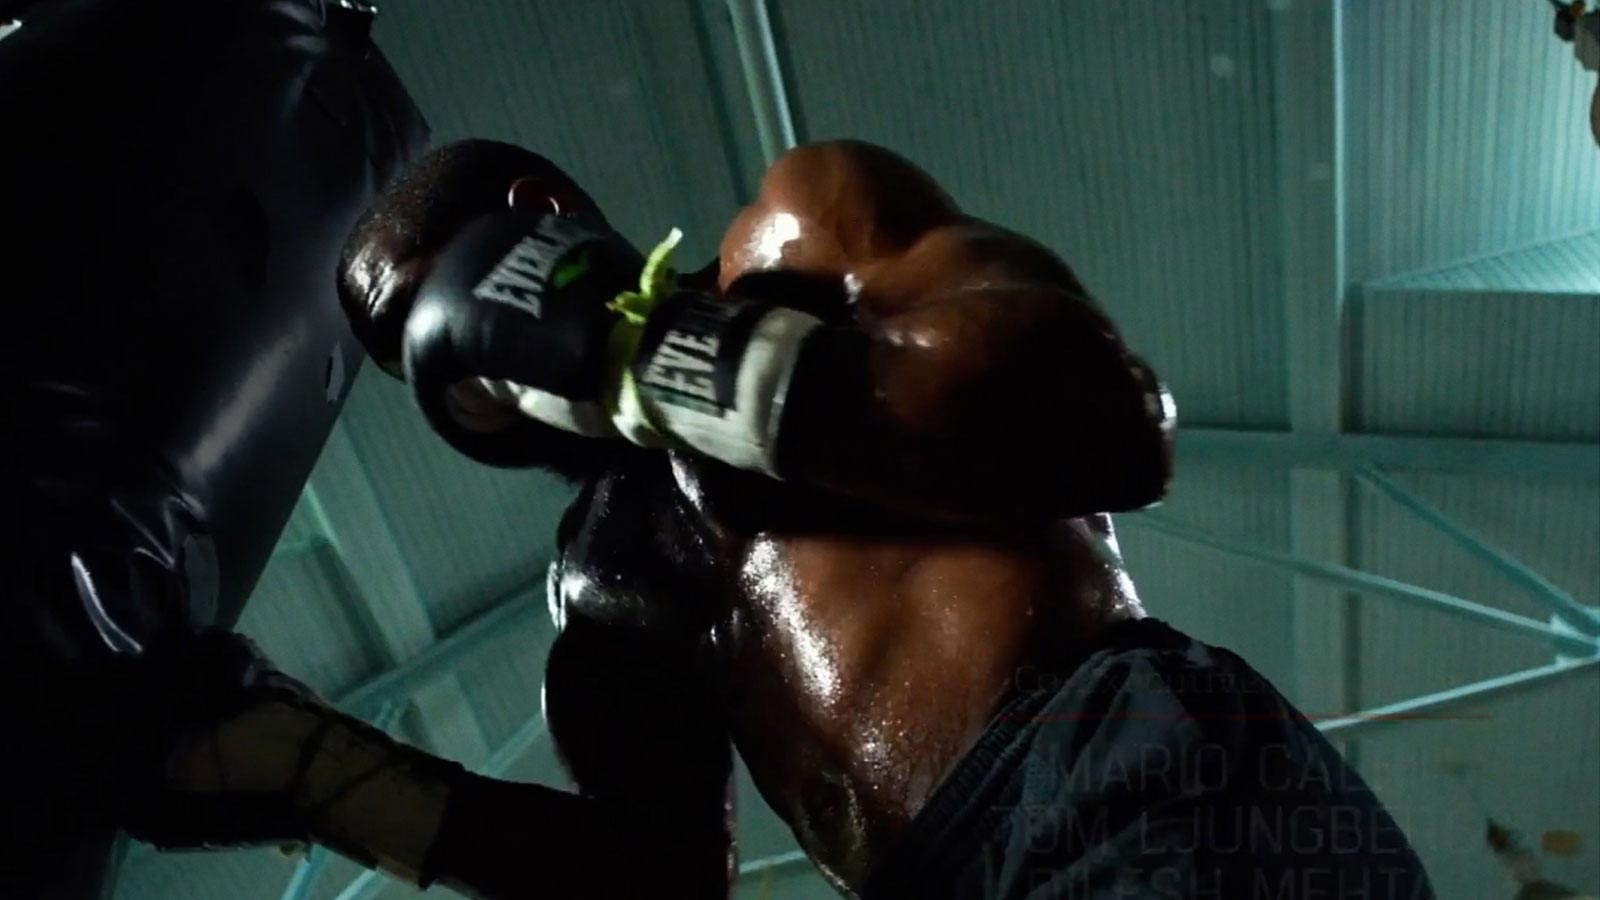 Background image of boxer punching a punching bag